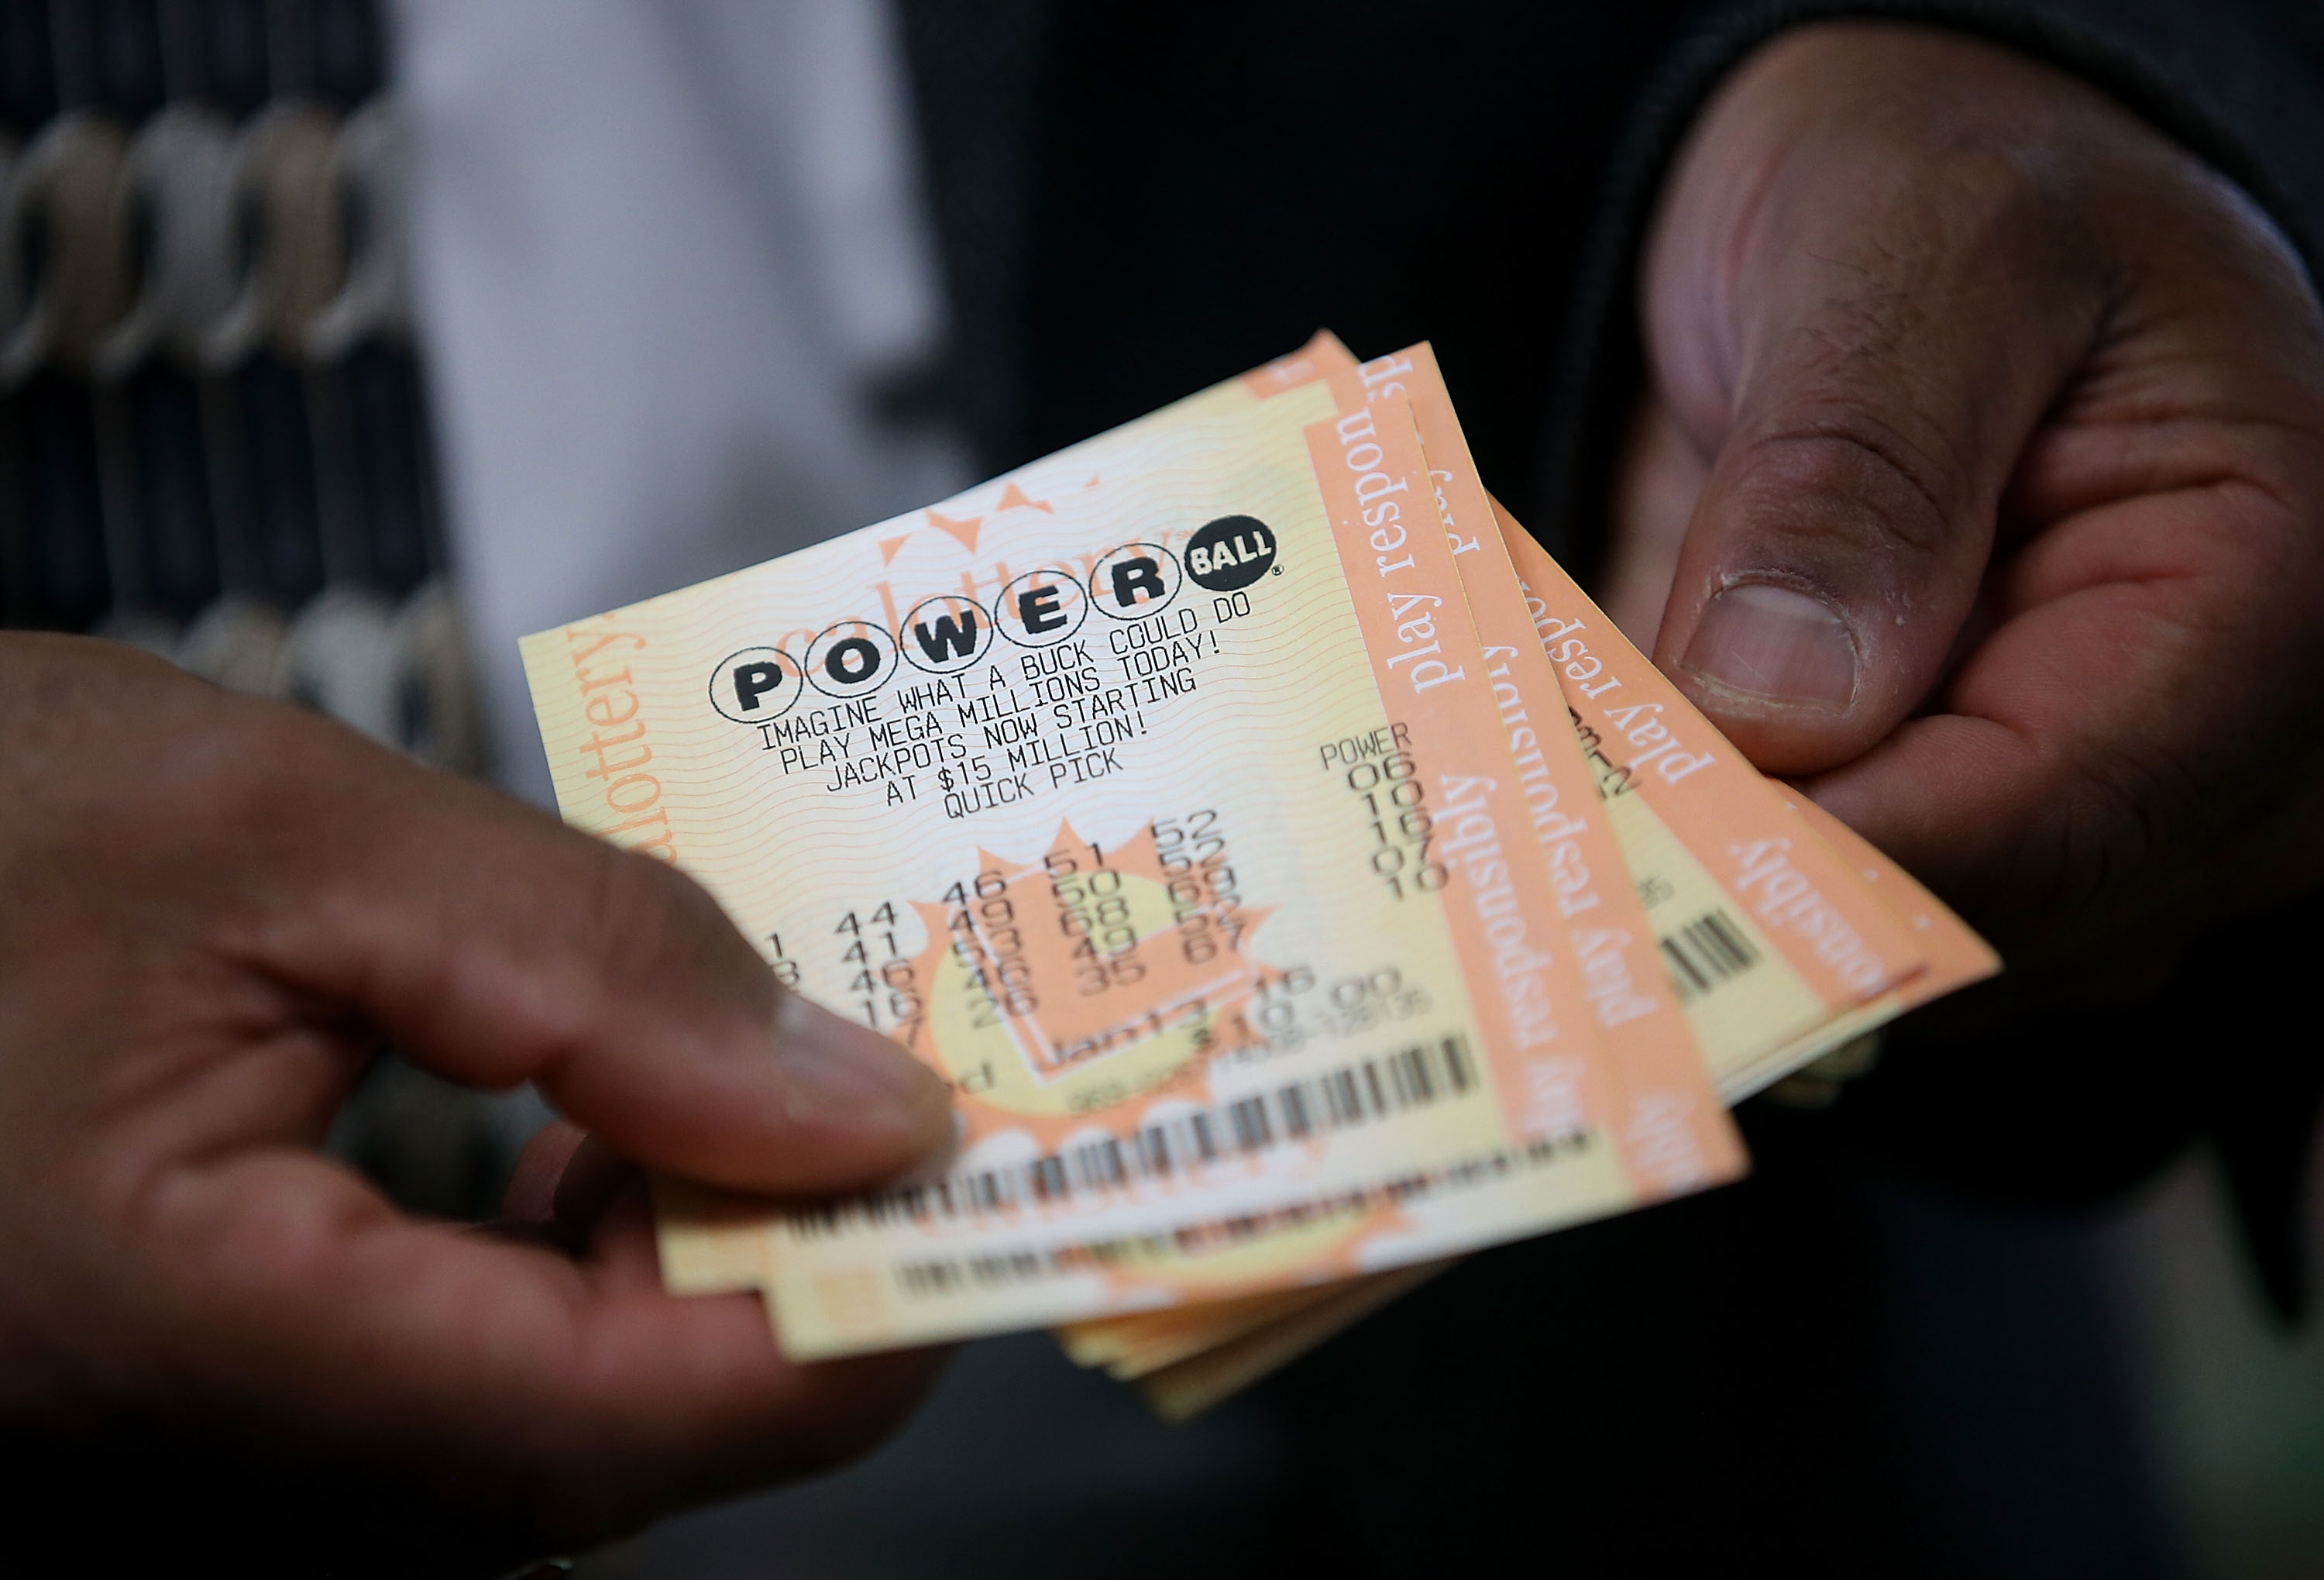 A customer holds Powerball tickets that he purchased at Kavanagh Liquors on January 12, 2015 in San Lorenzo, California.